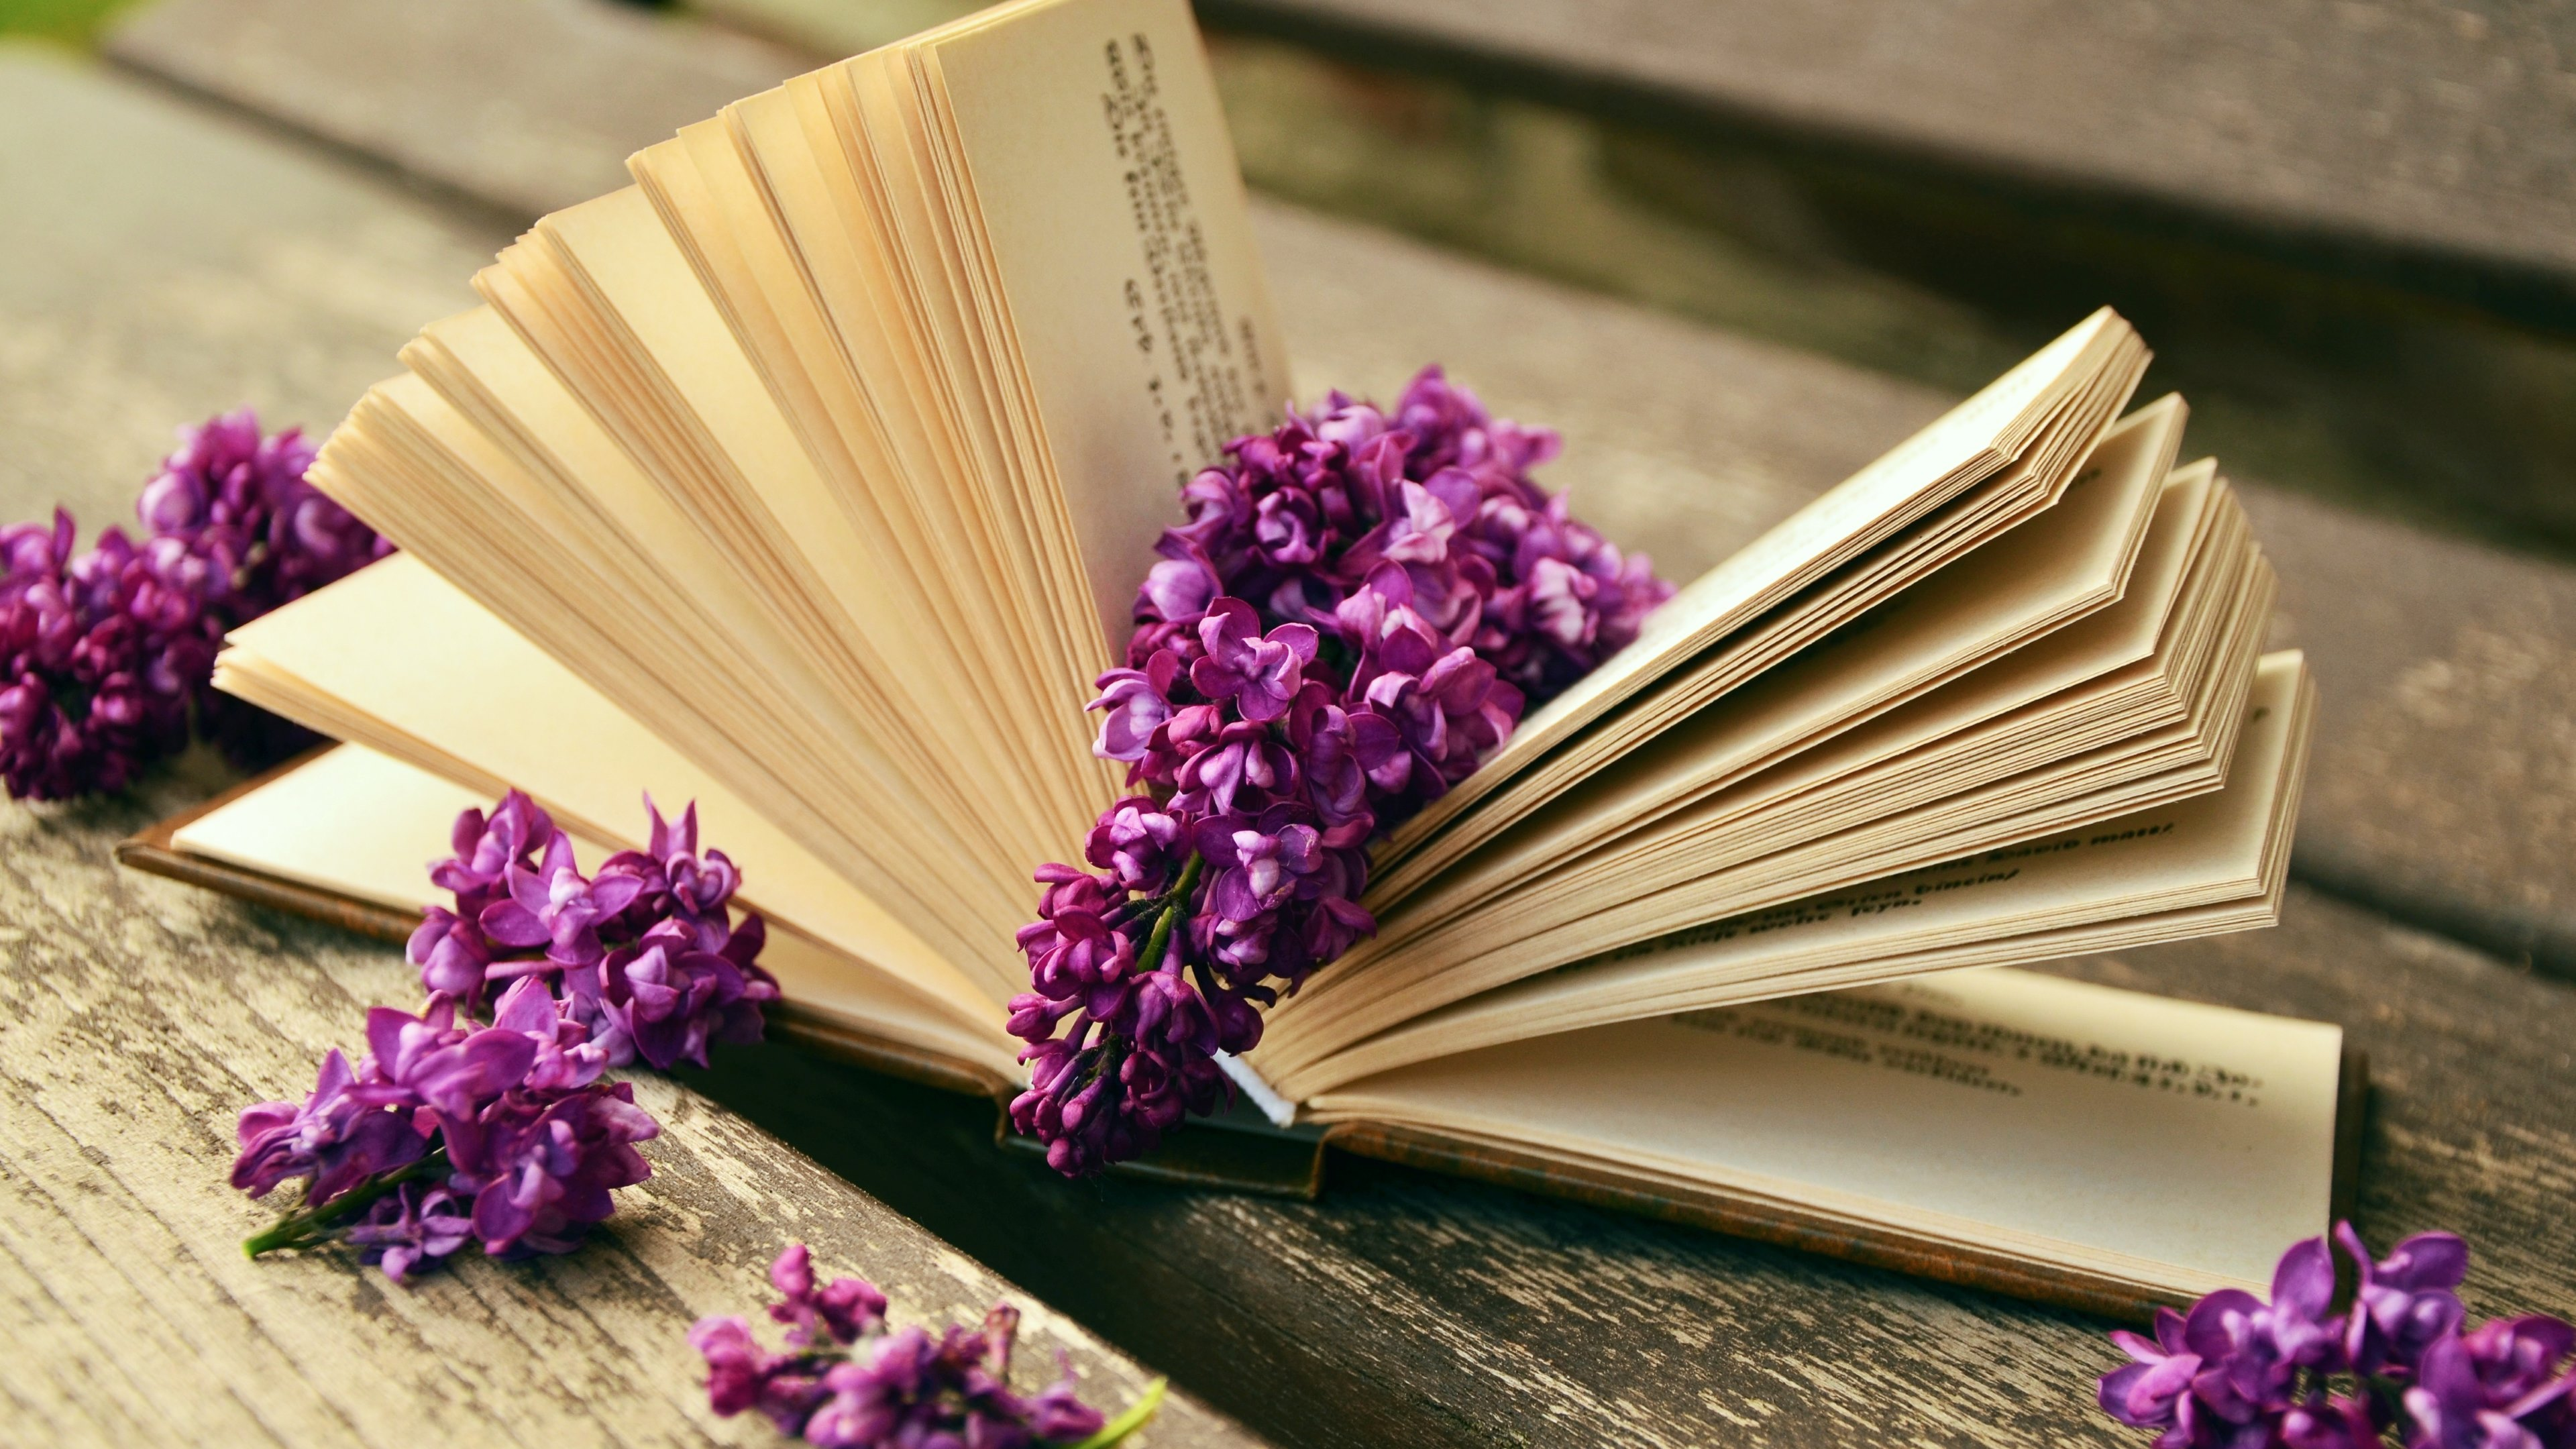 Lilac Flowers And A Good Book 4k Ultra Hd Wallpaper